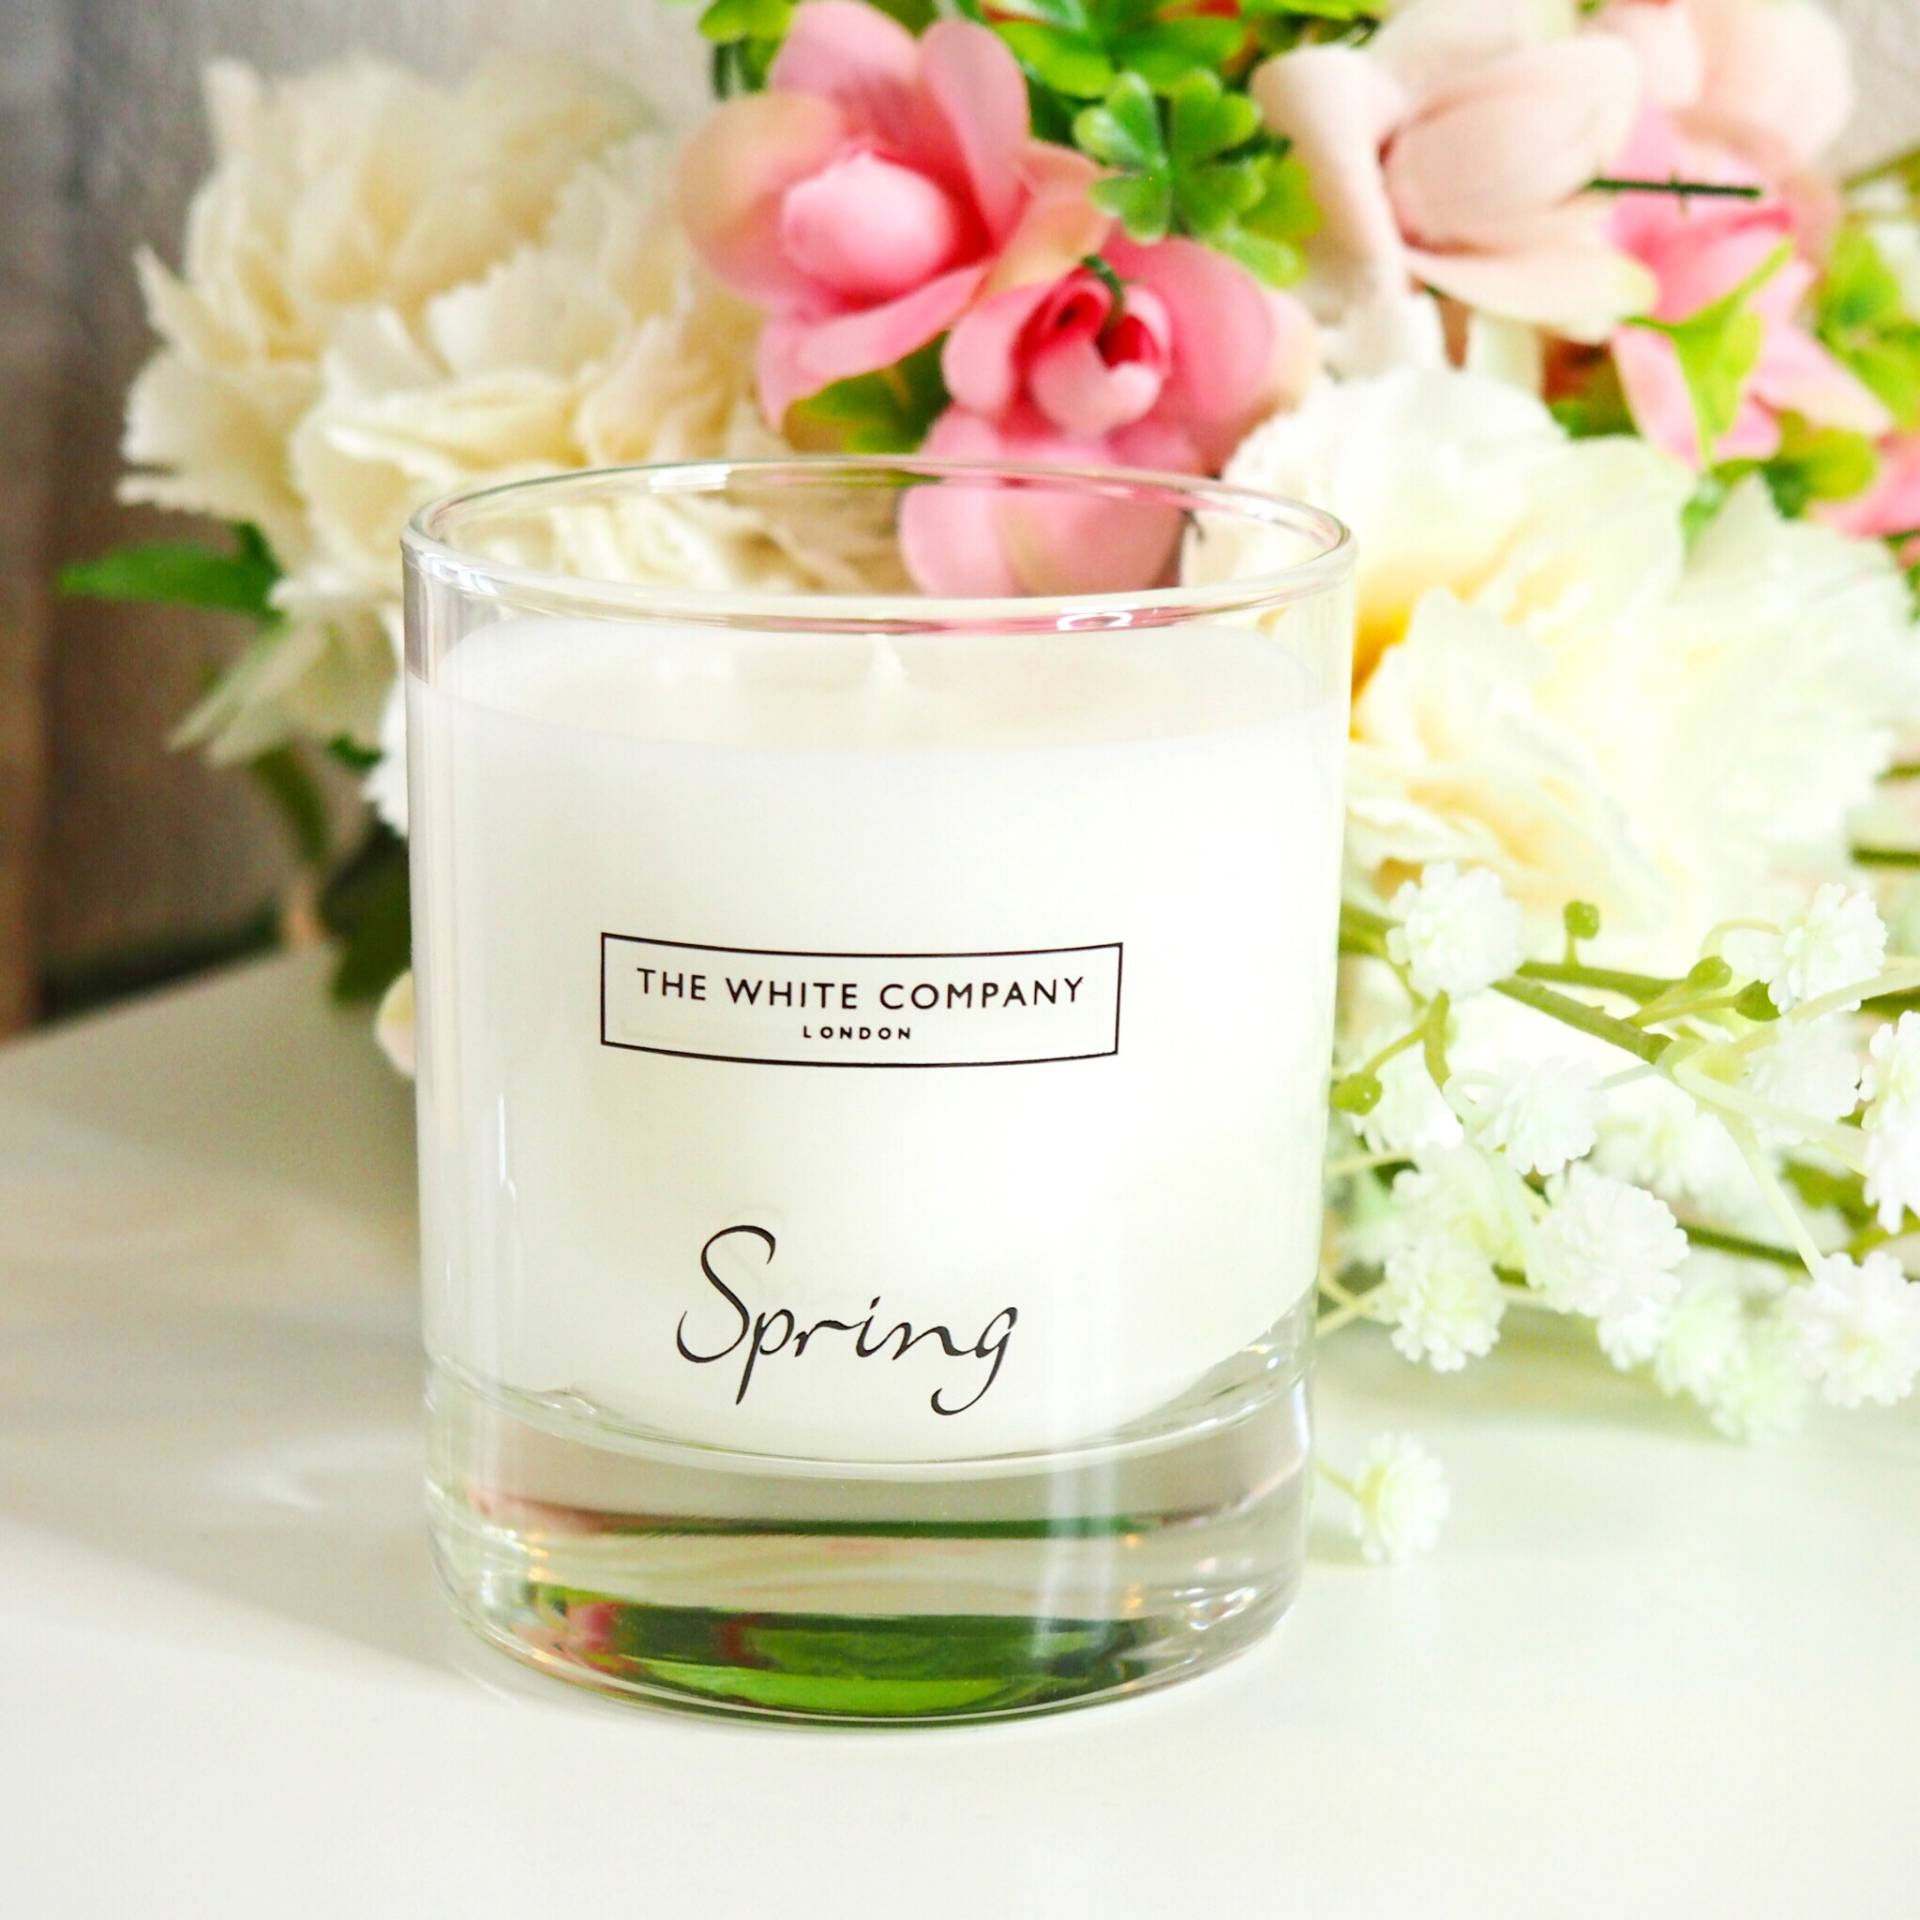 The White Company Spring Candle